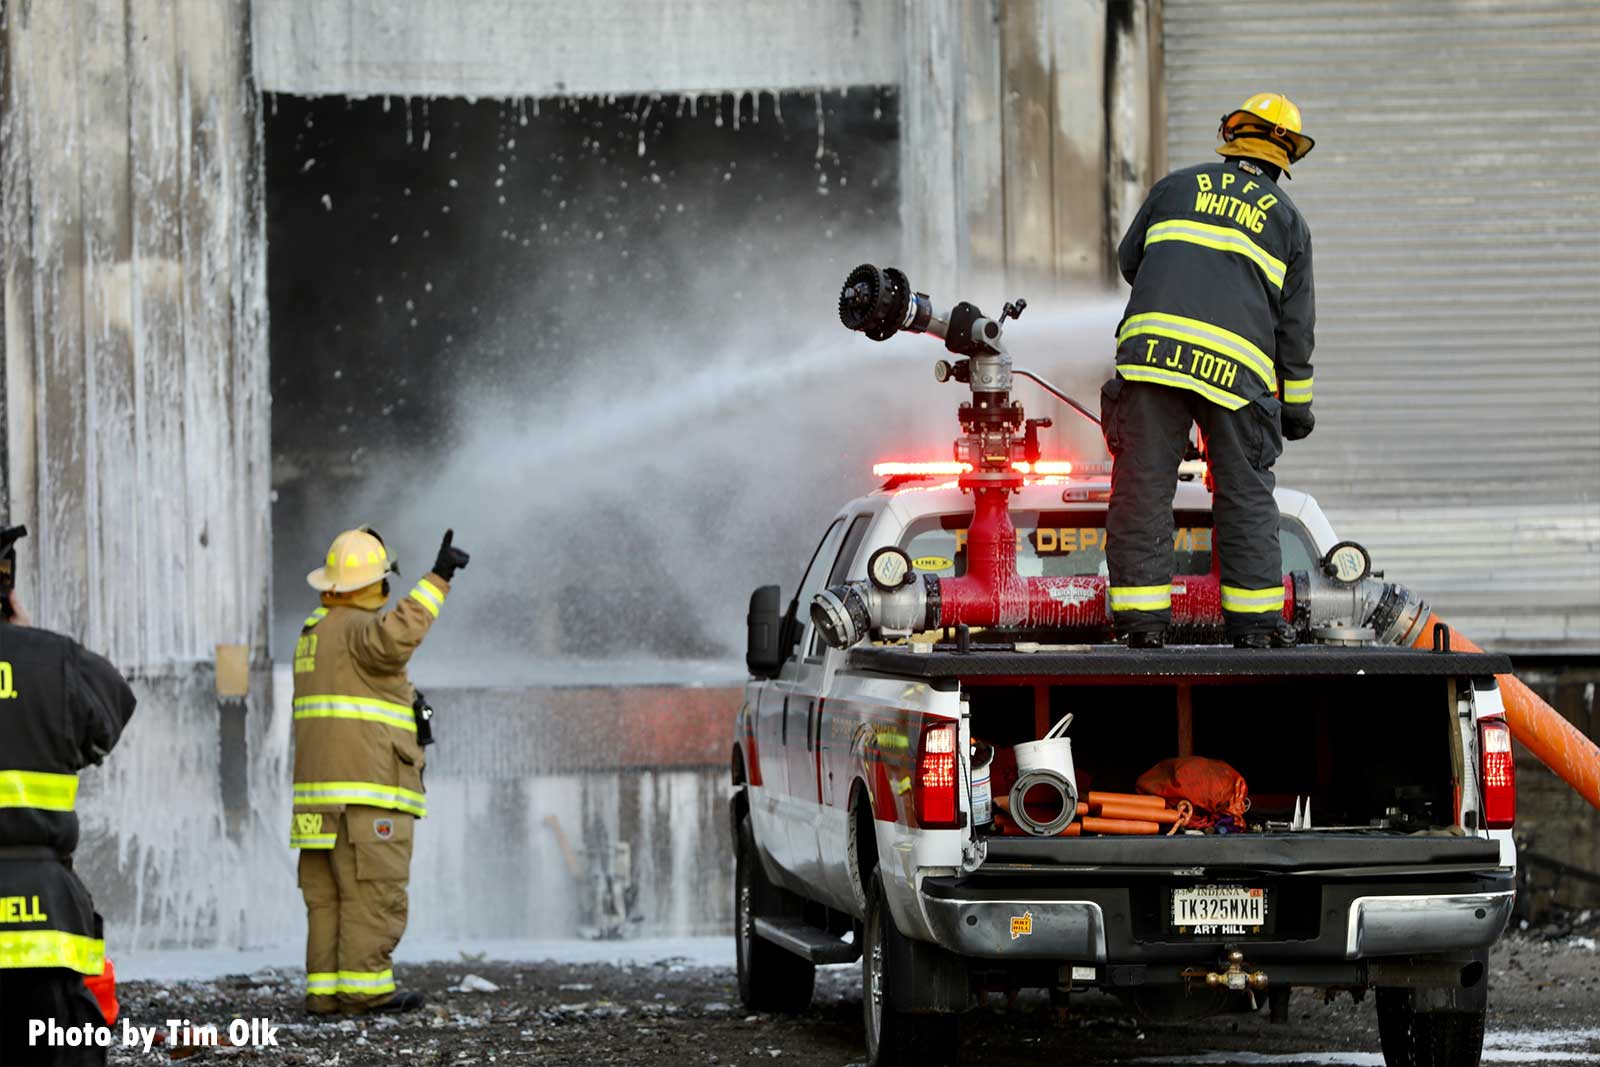 Truck-mounted foam cannon being used on fire